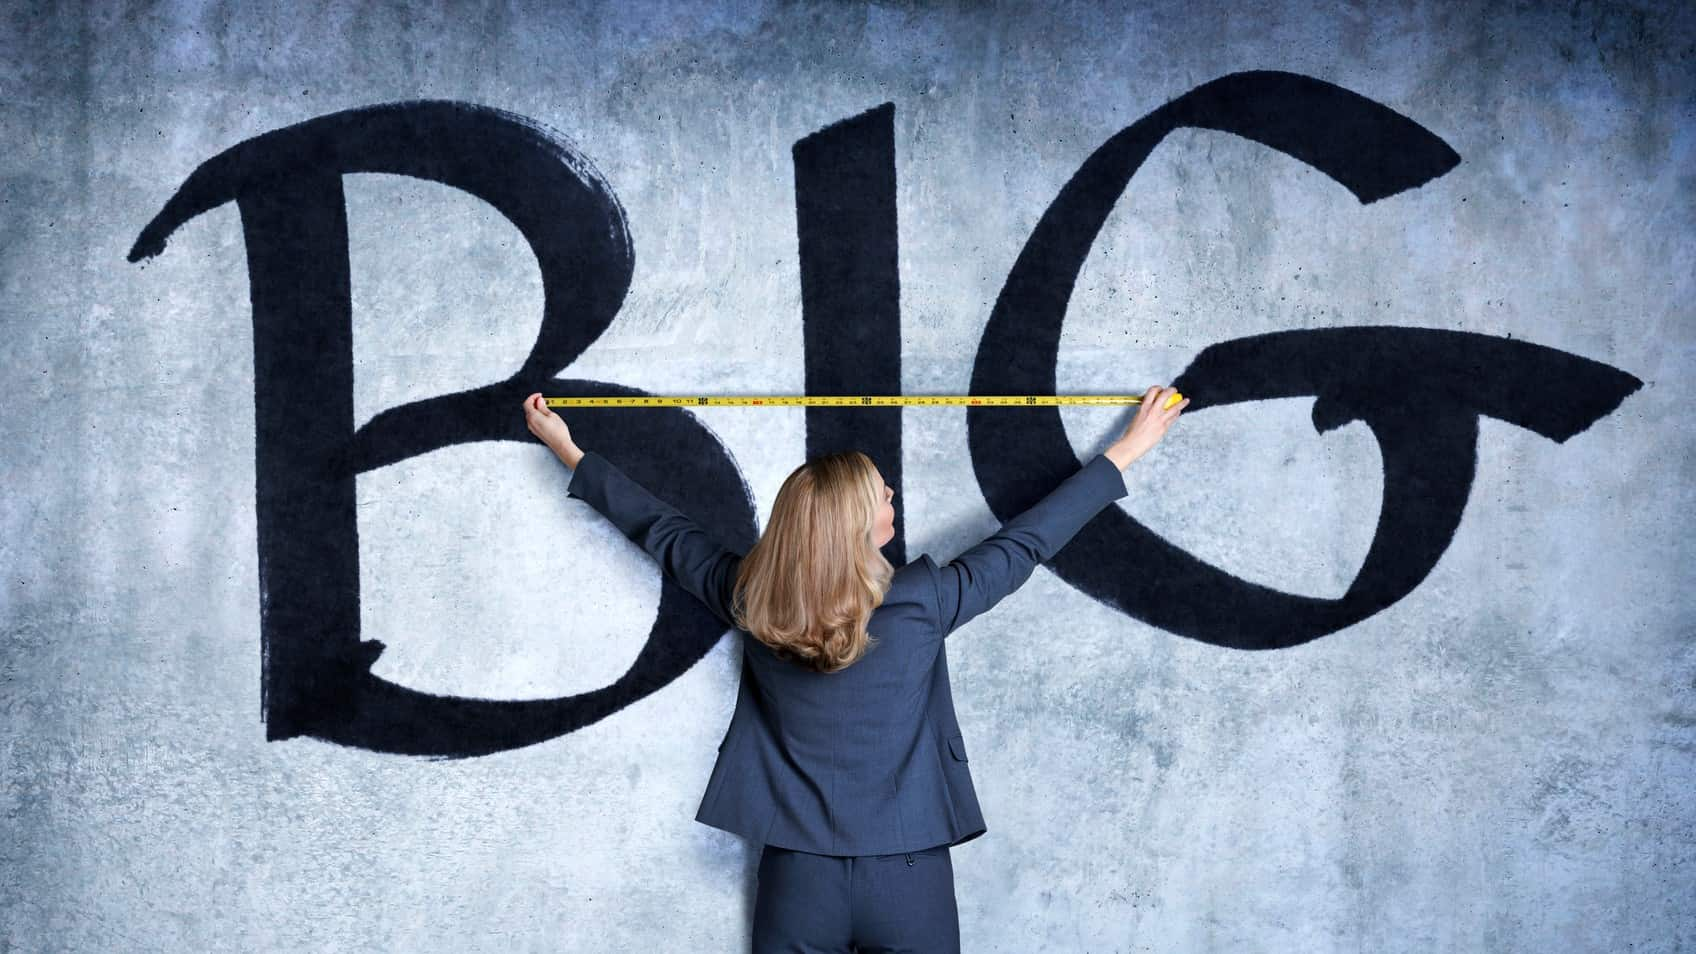 A woman holds a tape measure against a wall painted with the word BIG, indicating a surge in gowth shares